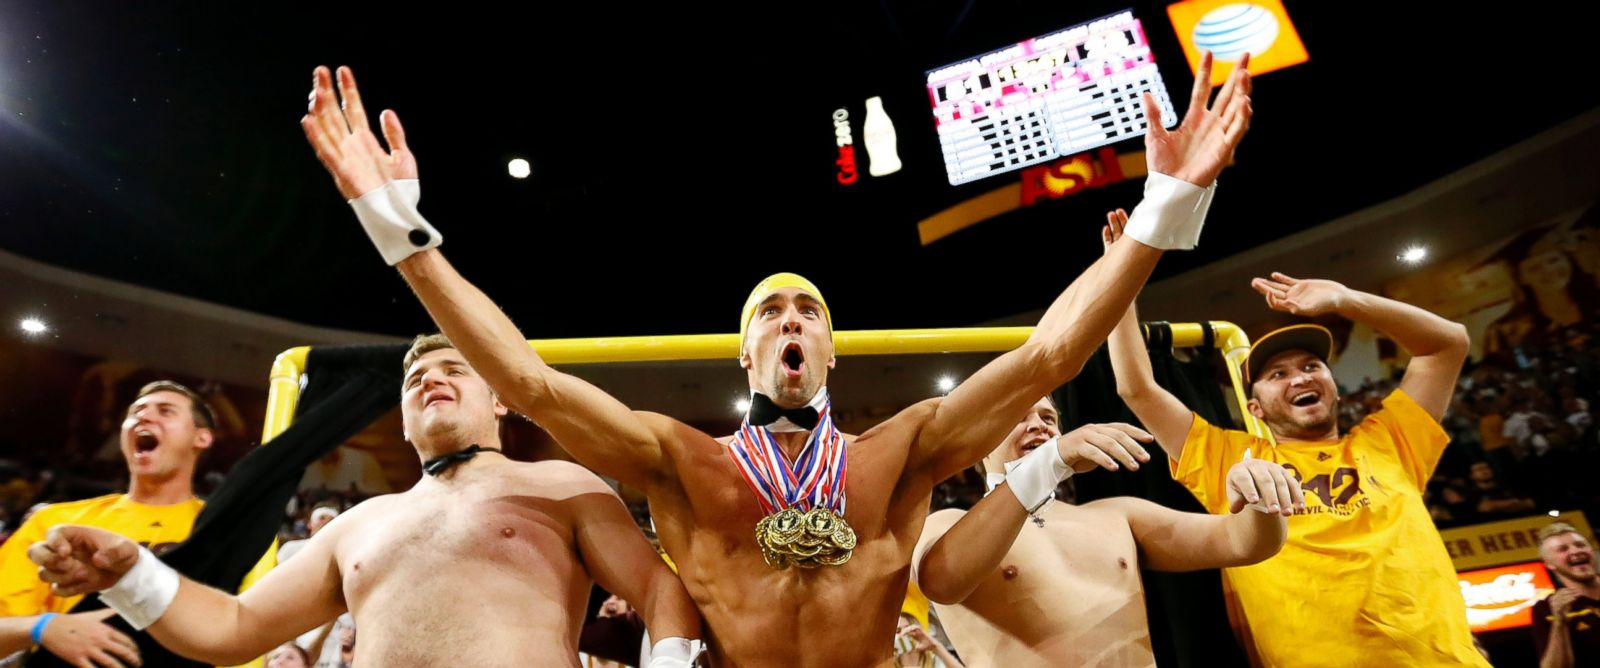 """PHOTO: Olympic swimmer Michael Phelps, center, performs behind the """"Curtain of Distraction"""" during an Oregon State free throw against Arizona State in the second half of an NCAA college basketball game, Jan. 28, 2016, in Tempe, Ariz."""